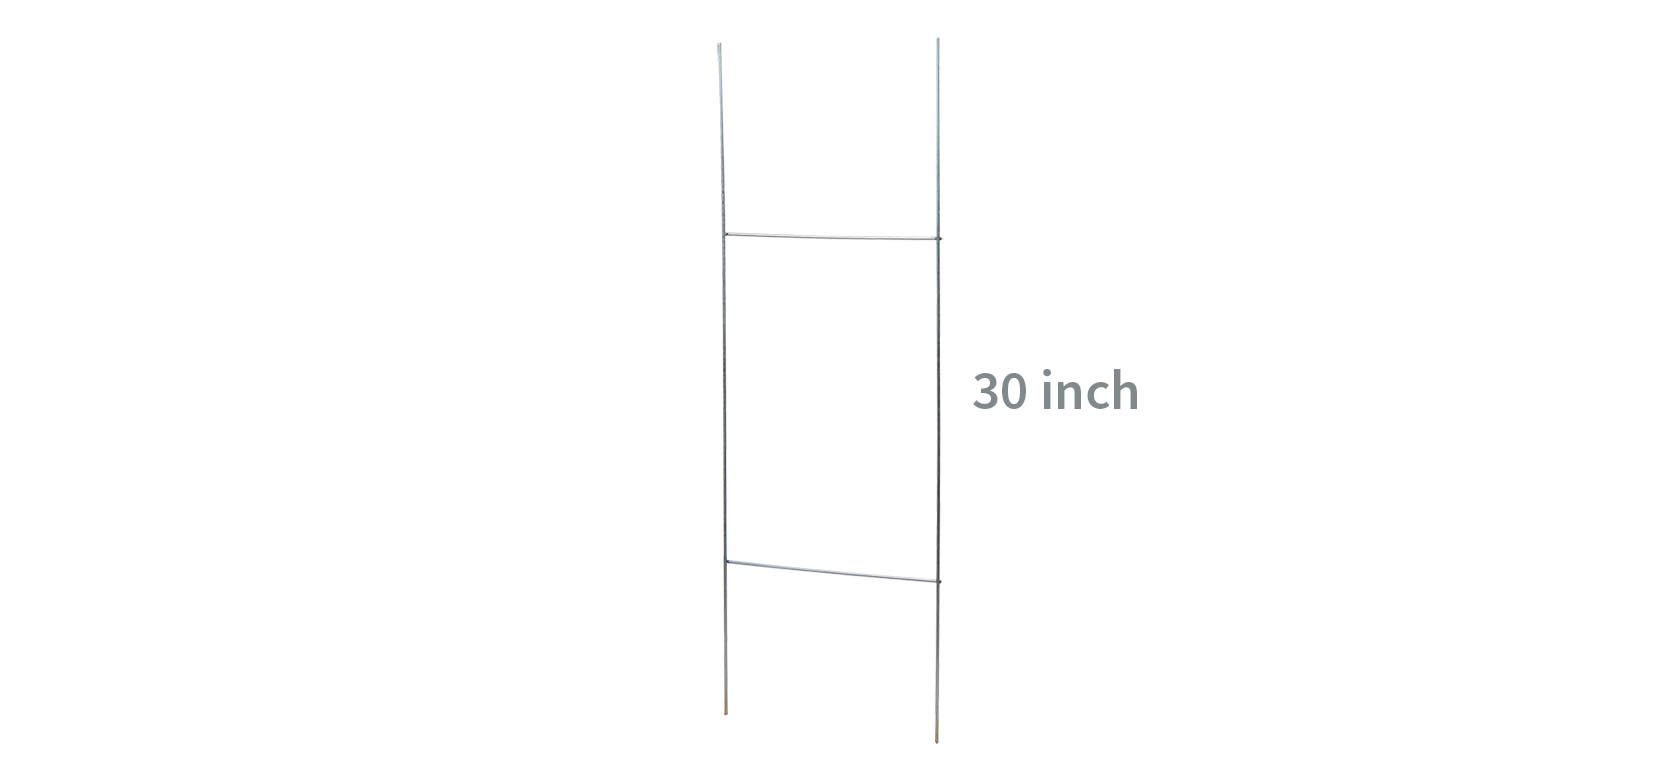 h wire stake frame